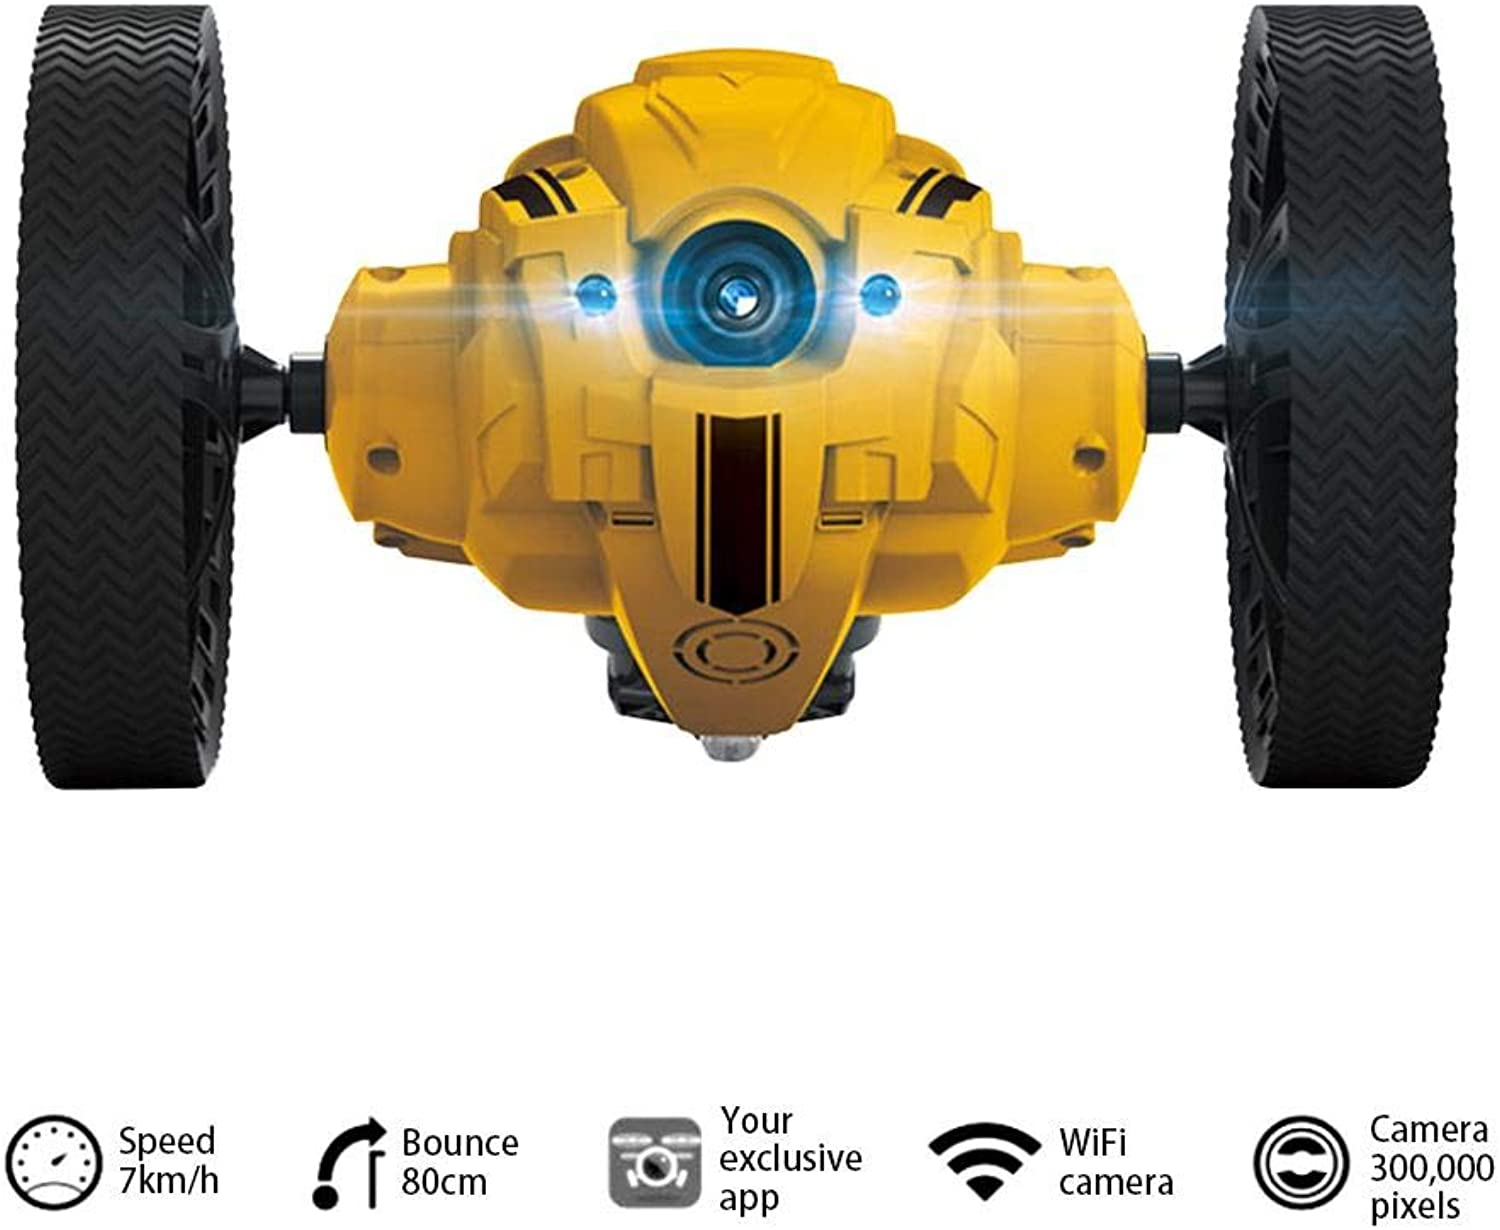 Colinsa RC Cars Radio Controlled Electric Toy Remote Control Cars Whit with Powerful LED, 1 Second Flip, OffRoad Vehicle, Good for Kids, Stunt Car